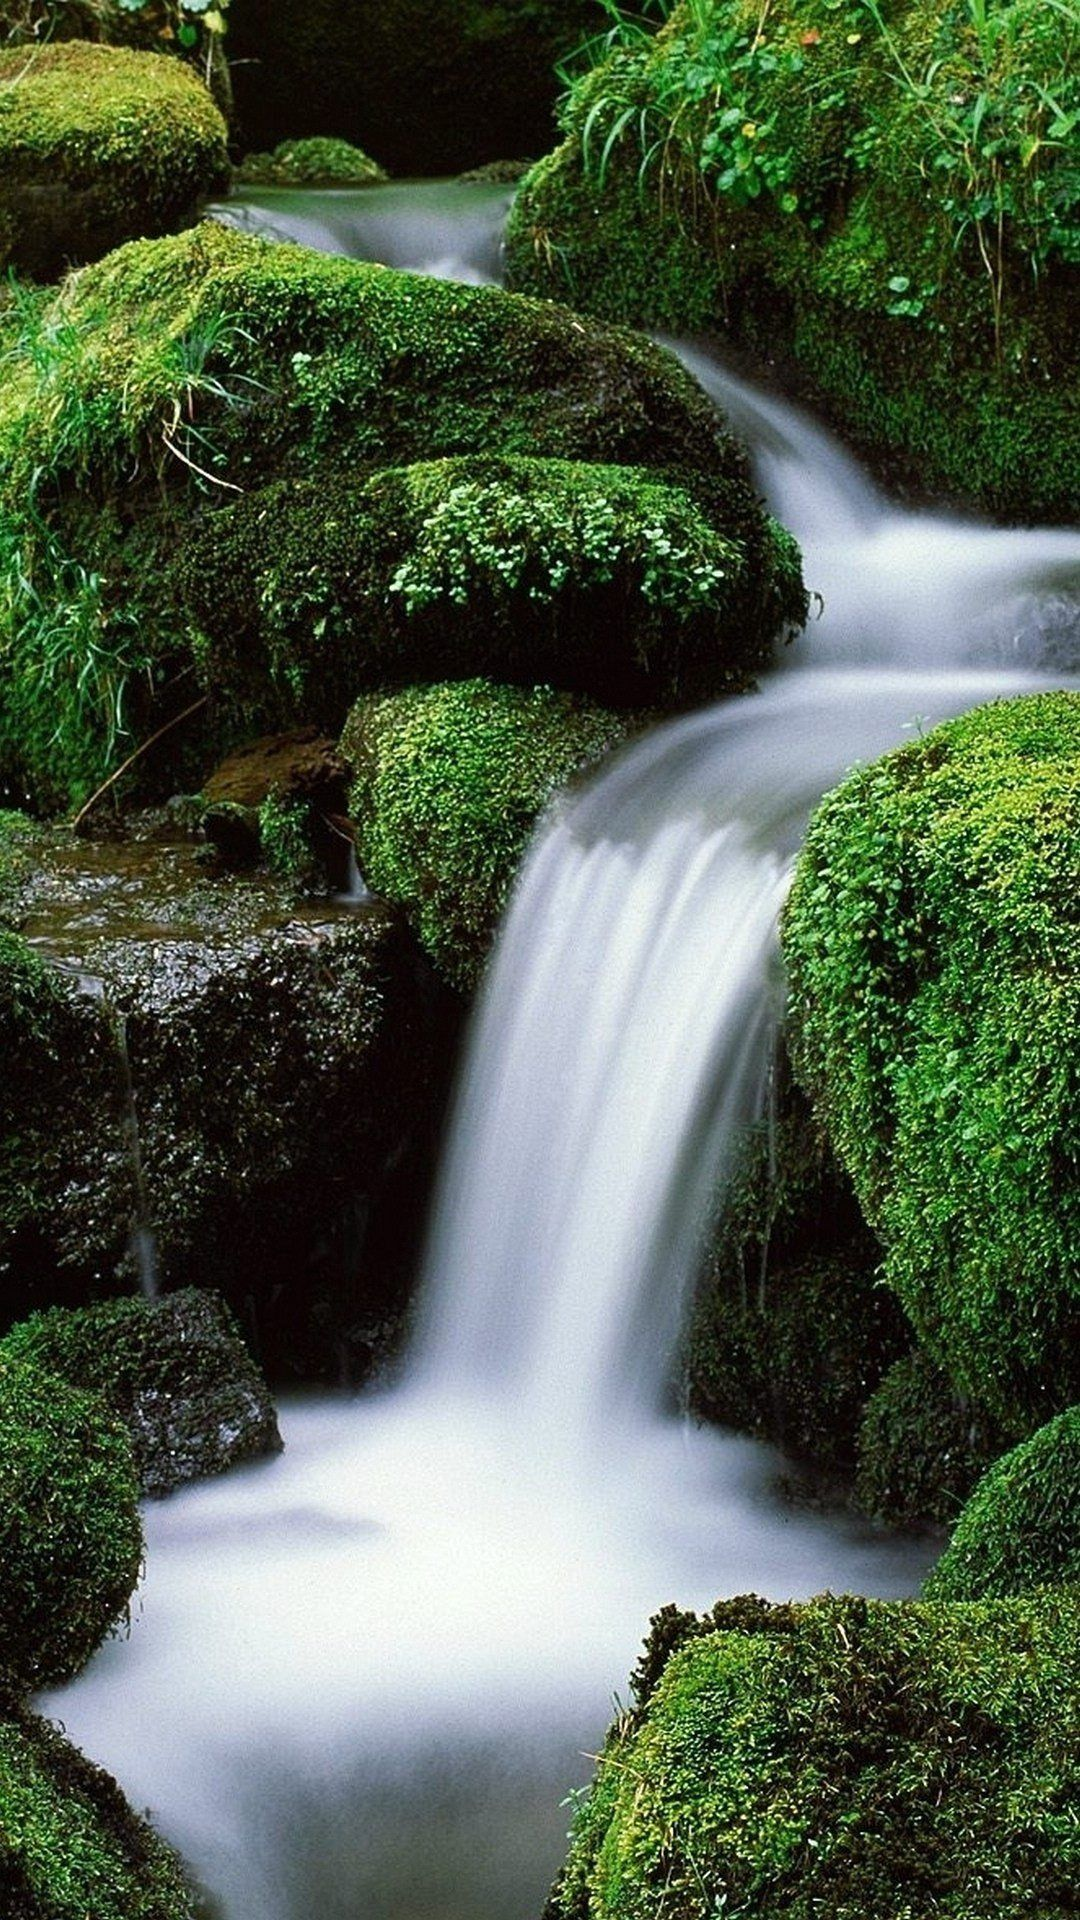 Waterfall Wallpaper Wallpapers For Free Download About Hd